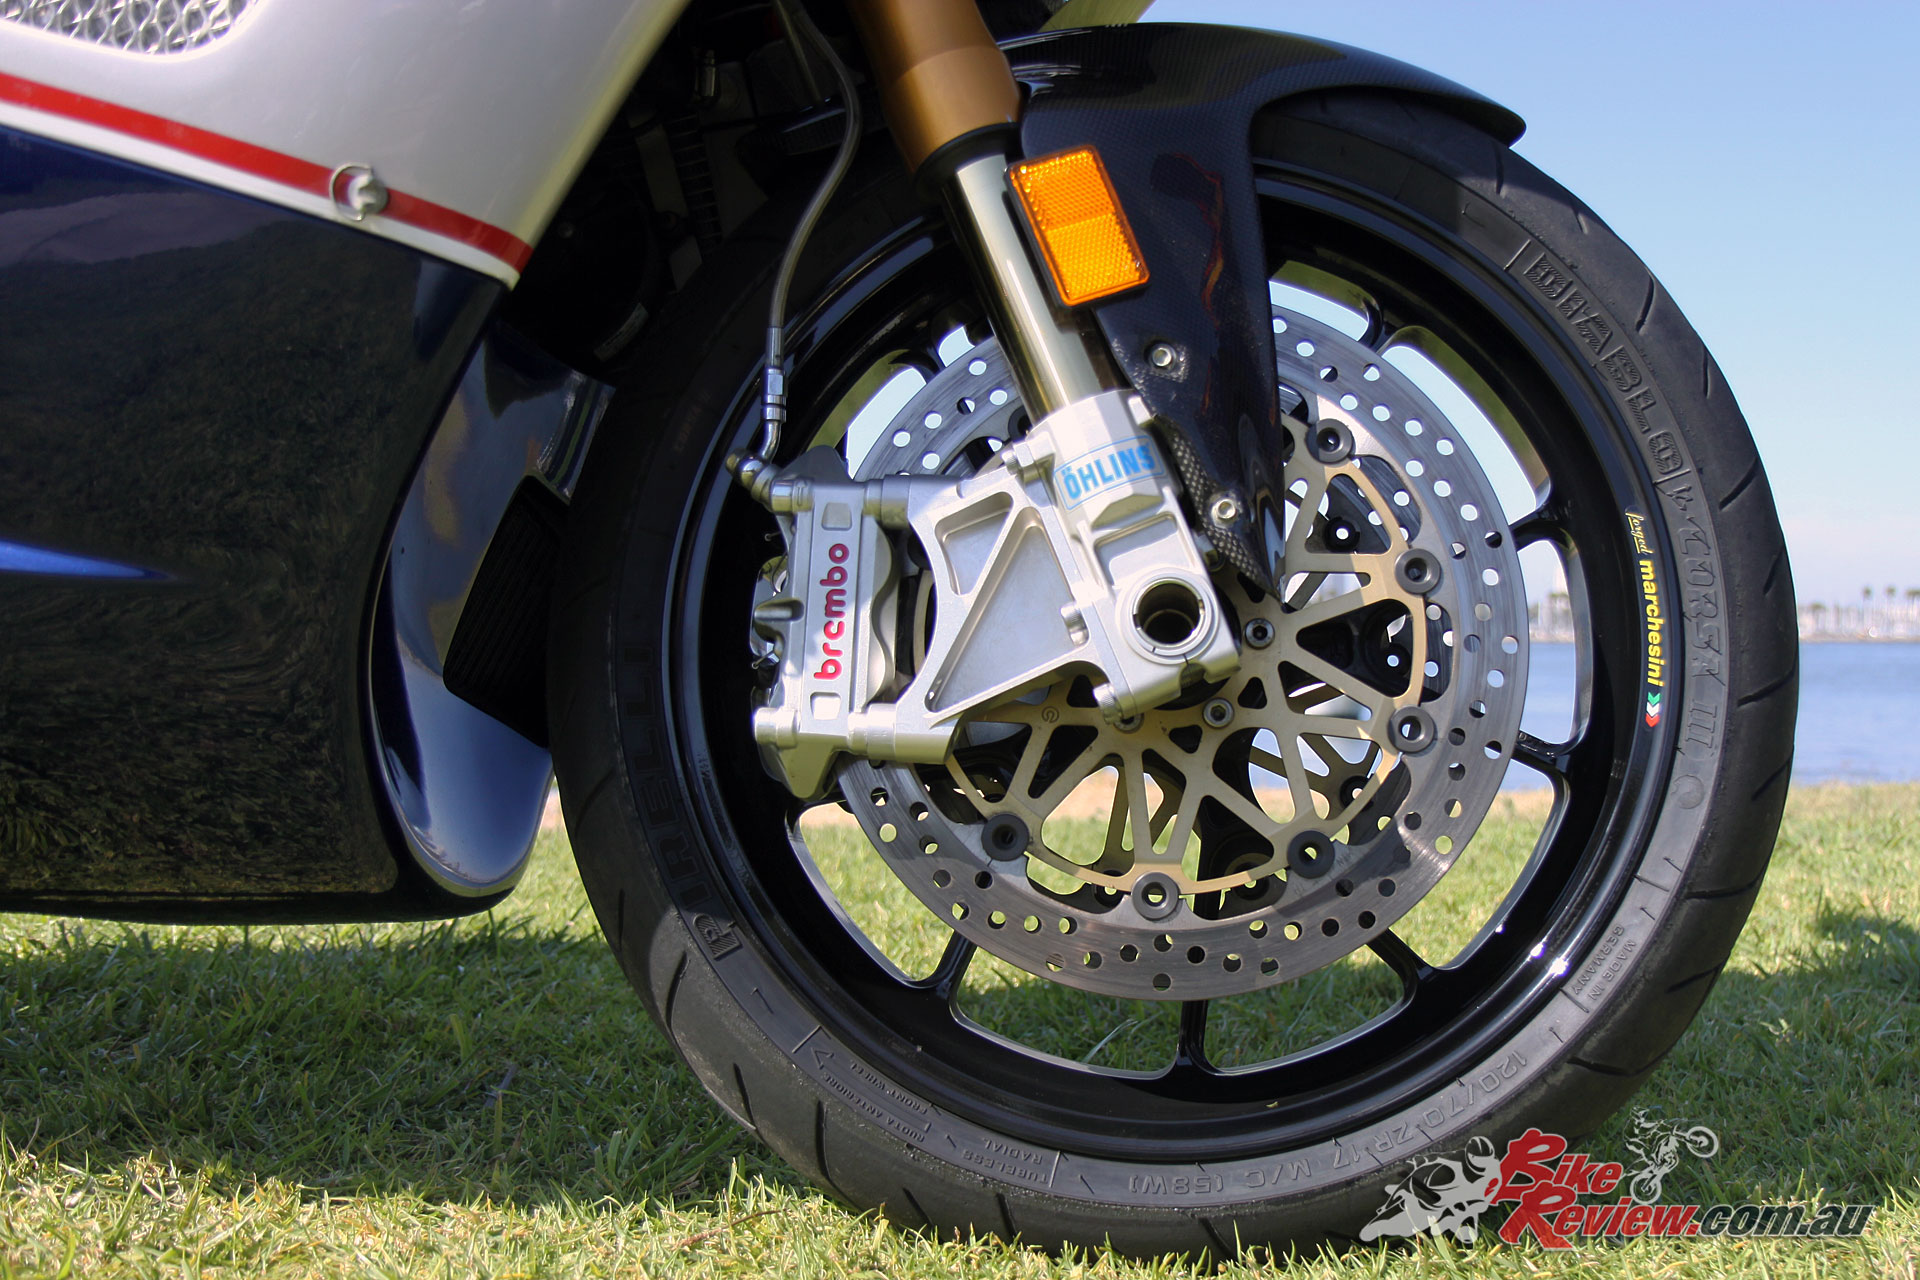 Ohlins suspension is featured front and rear, with Brembo brake calipers on the front